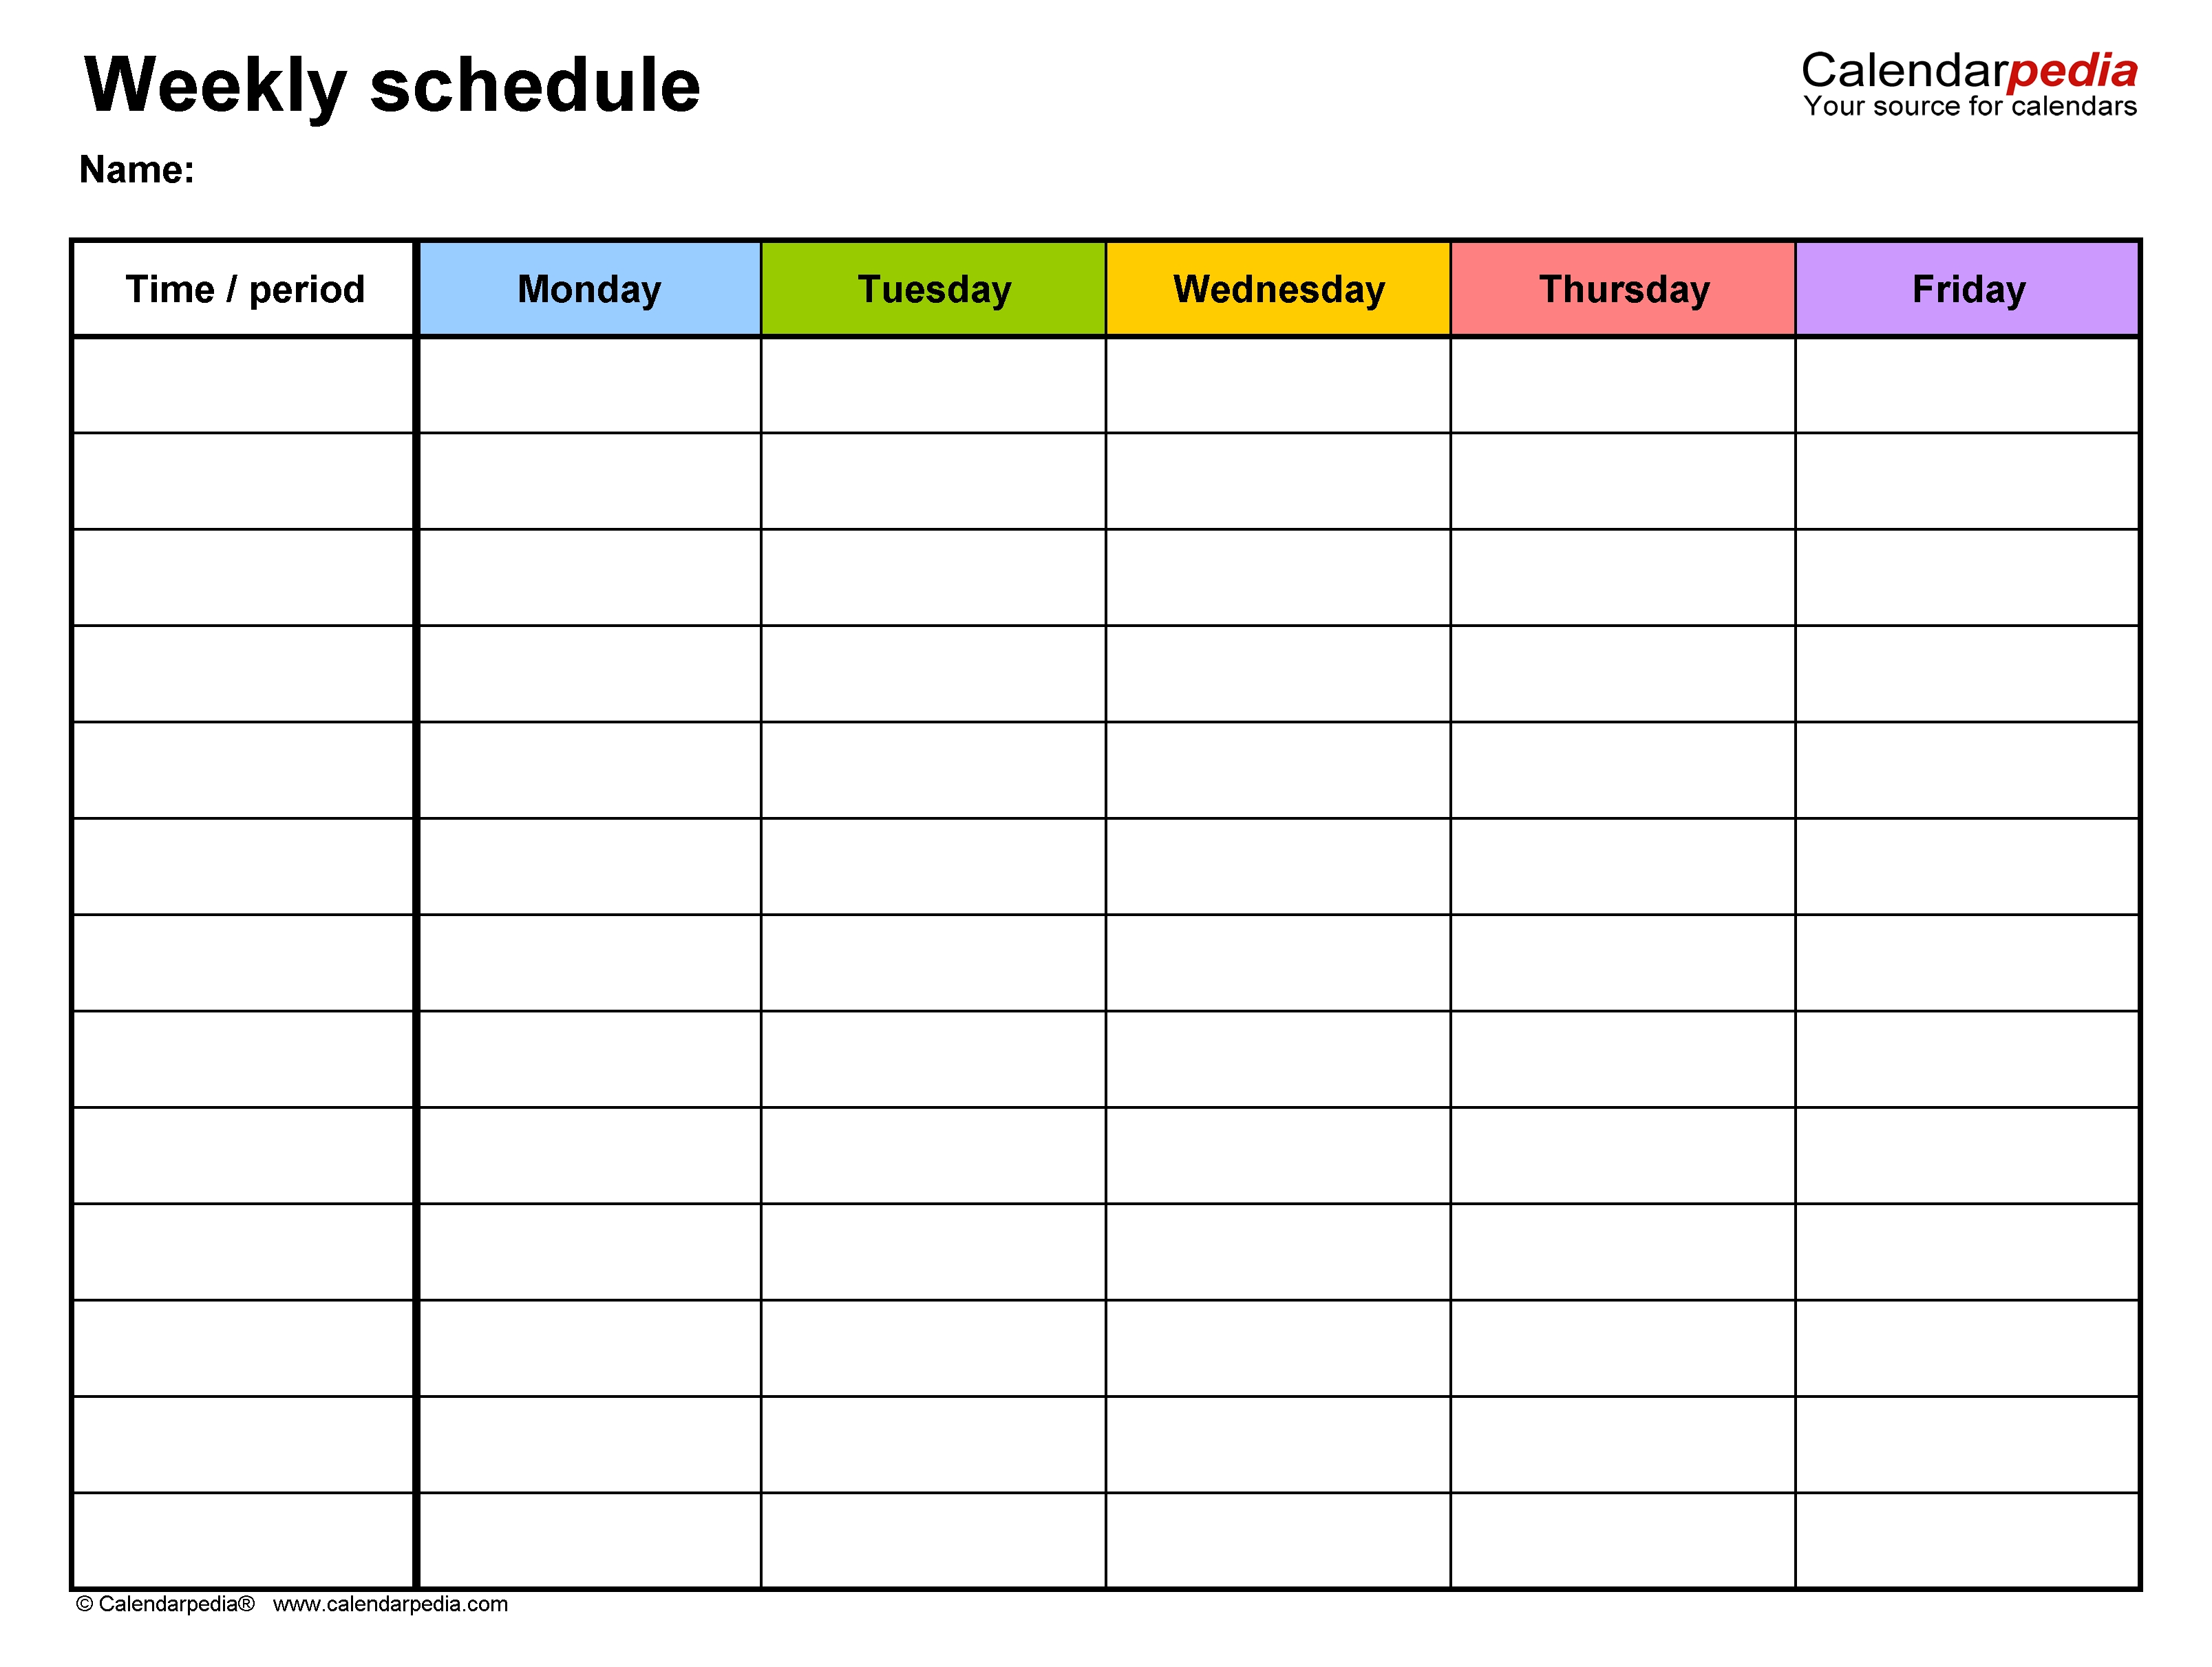 Free Weekly Schedule Templates For Excel - 18 Templates-Weekly Hourly Template May Through September 2020